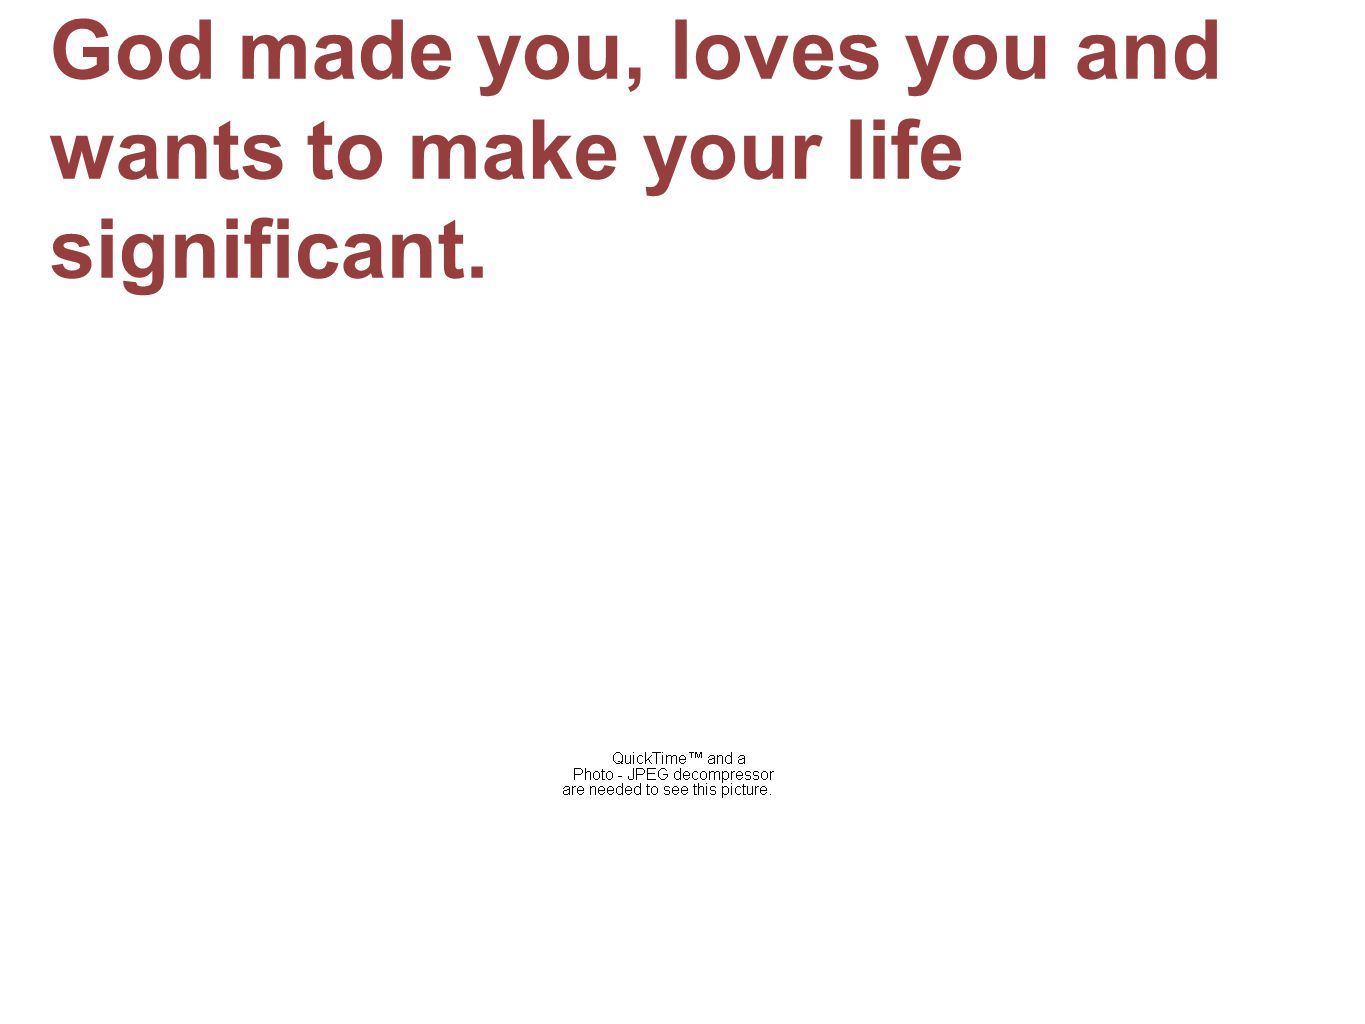 God made you, loves you and wants to make your life significant.